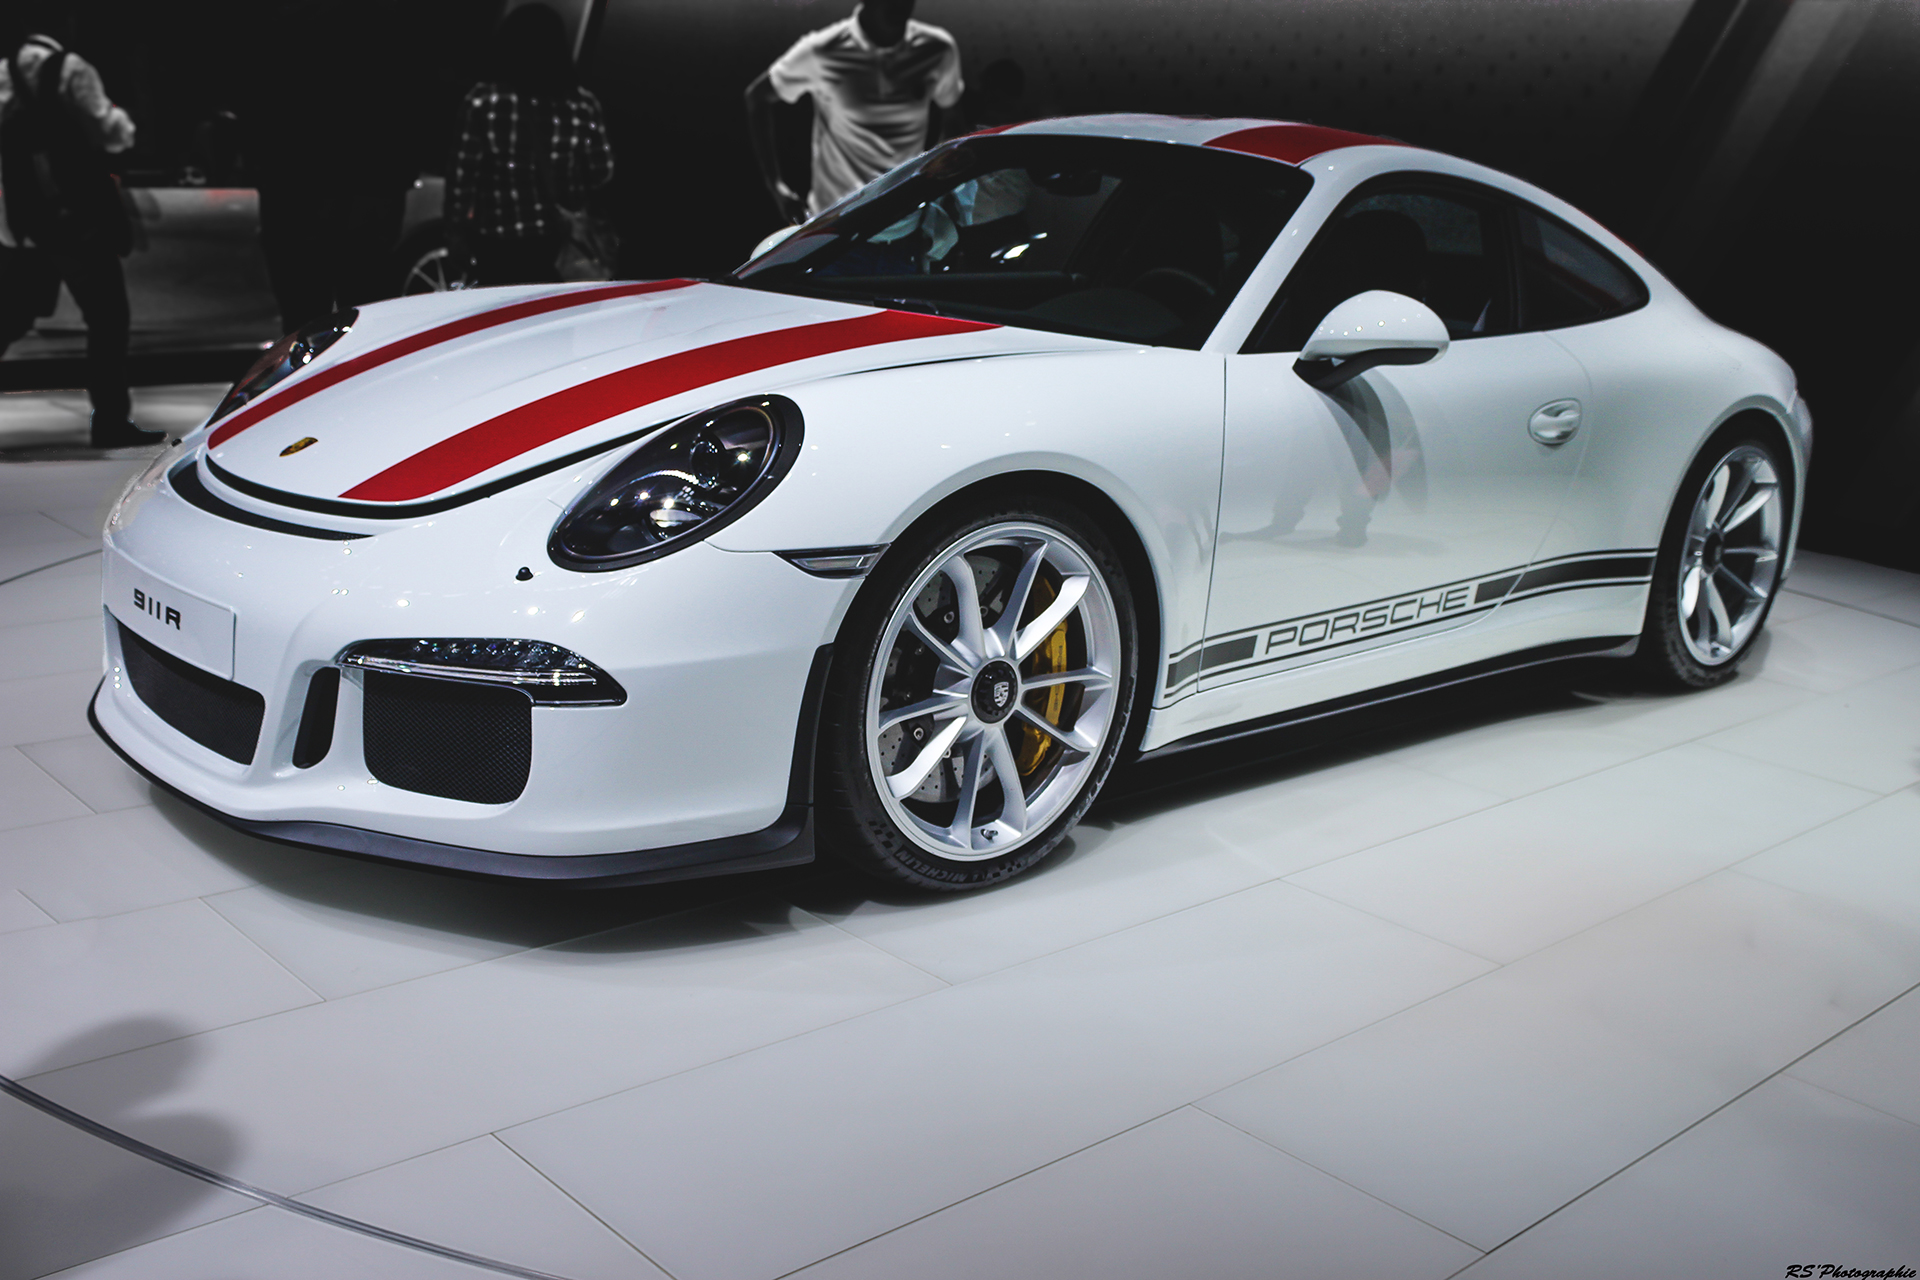 Porsche 911 R - Geneva 2016 - Arnaud Demasier RS Photographie